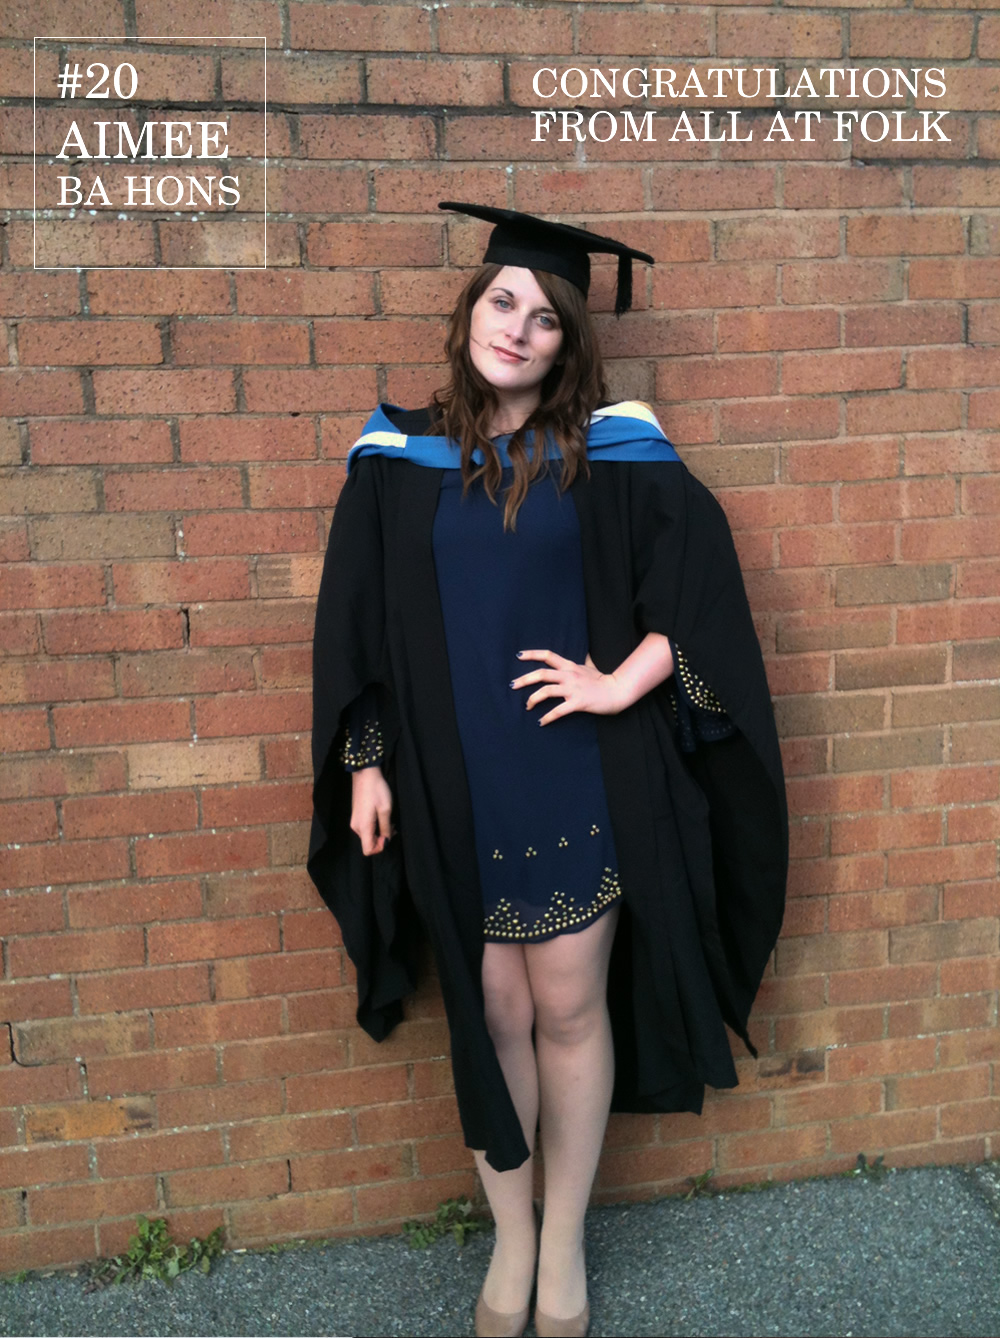 Our Aimee can today finally revel in celebrating the end of the last 3 years of dissertations and pot noodles by posing for the most formal Fash-Off to date.   Now fully qualified in art of Advertising and Marketing Communications let's hope things like this Fash-off get replaced for something more significant.   Aimee teams her Mortar board and gown with a navy and gold studded dress to update a classic graduate look. Here's to you Mrs Robinson…      Dress: Miss Selfridge     Shoes: New Look     Mortar board and gown: Hired     Degree: Bournemouth University